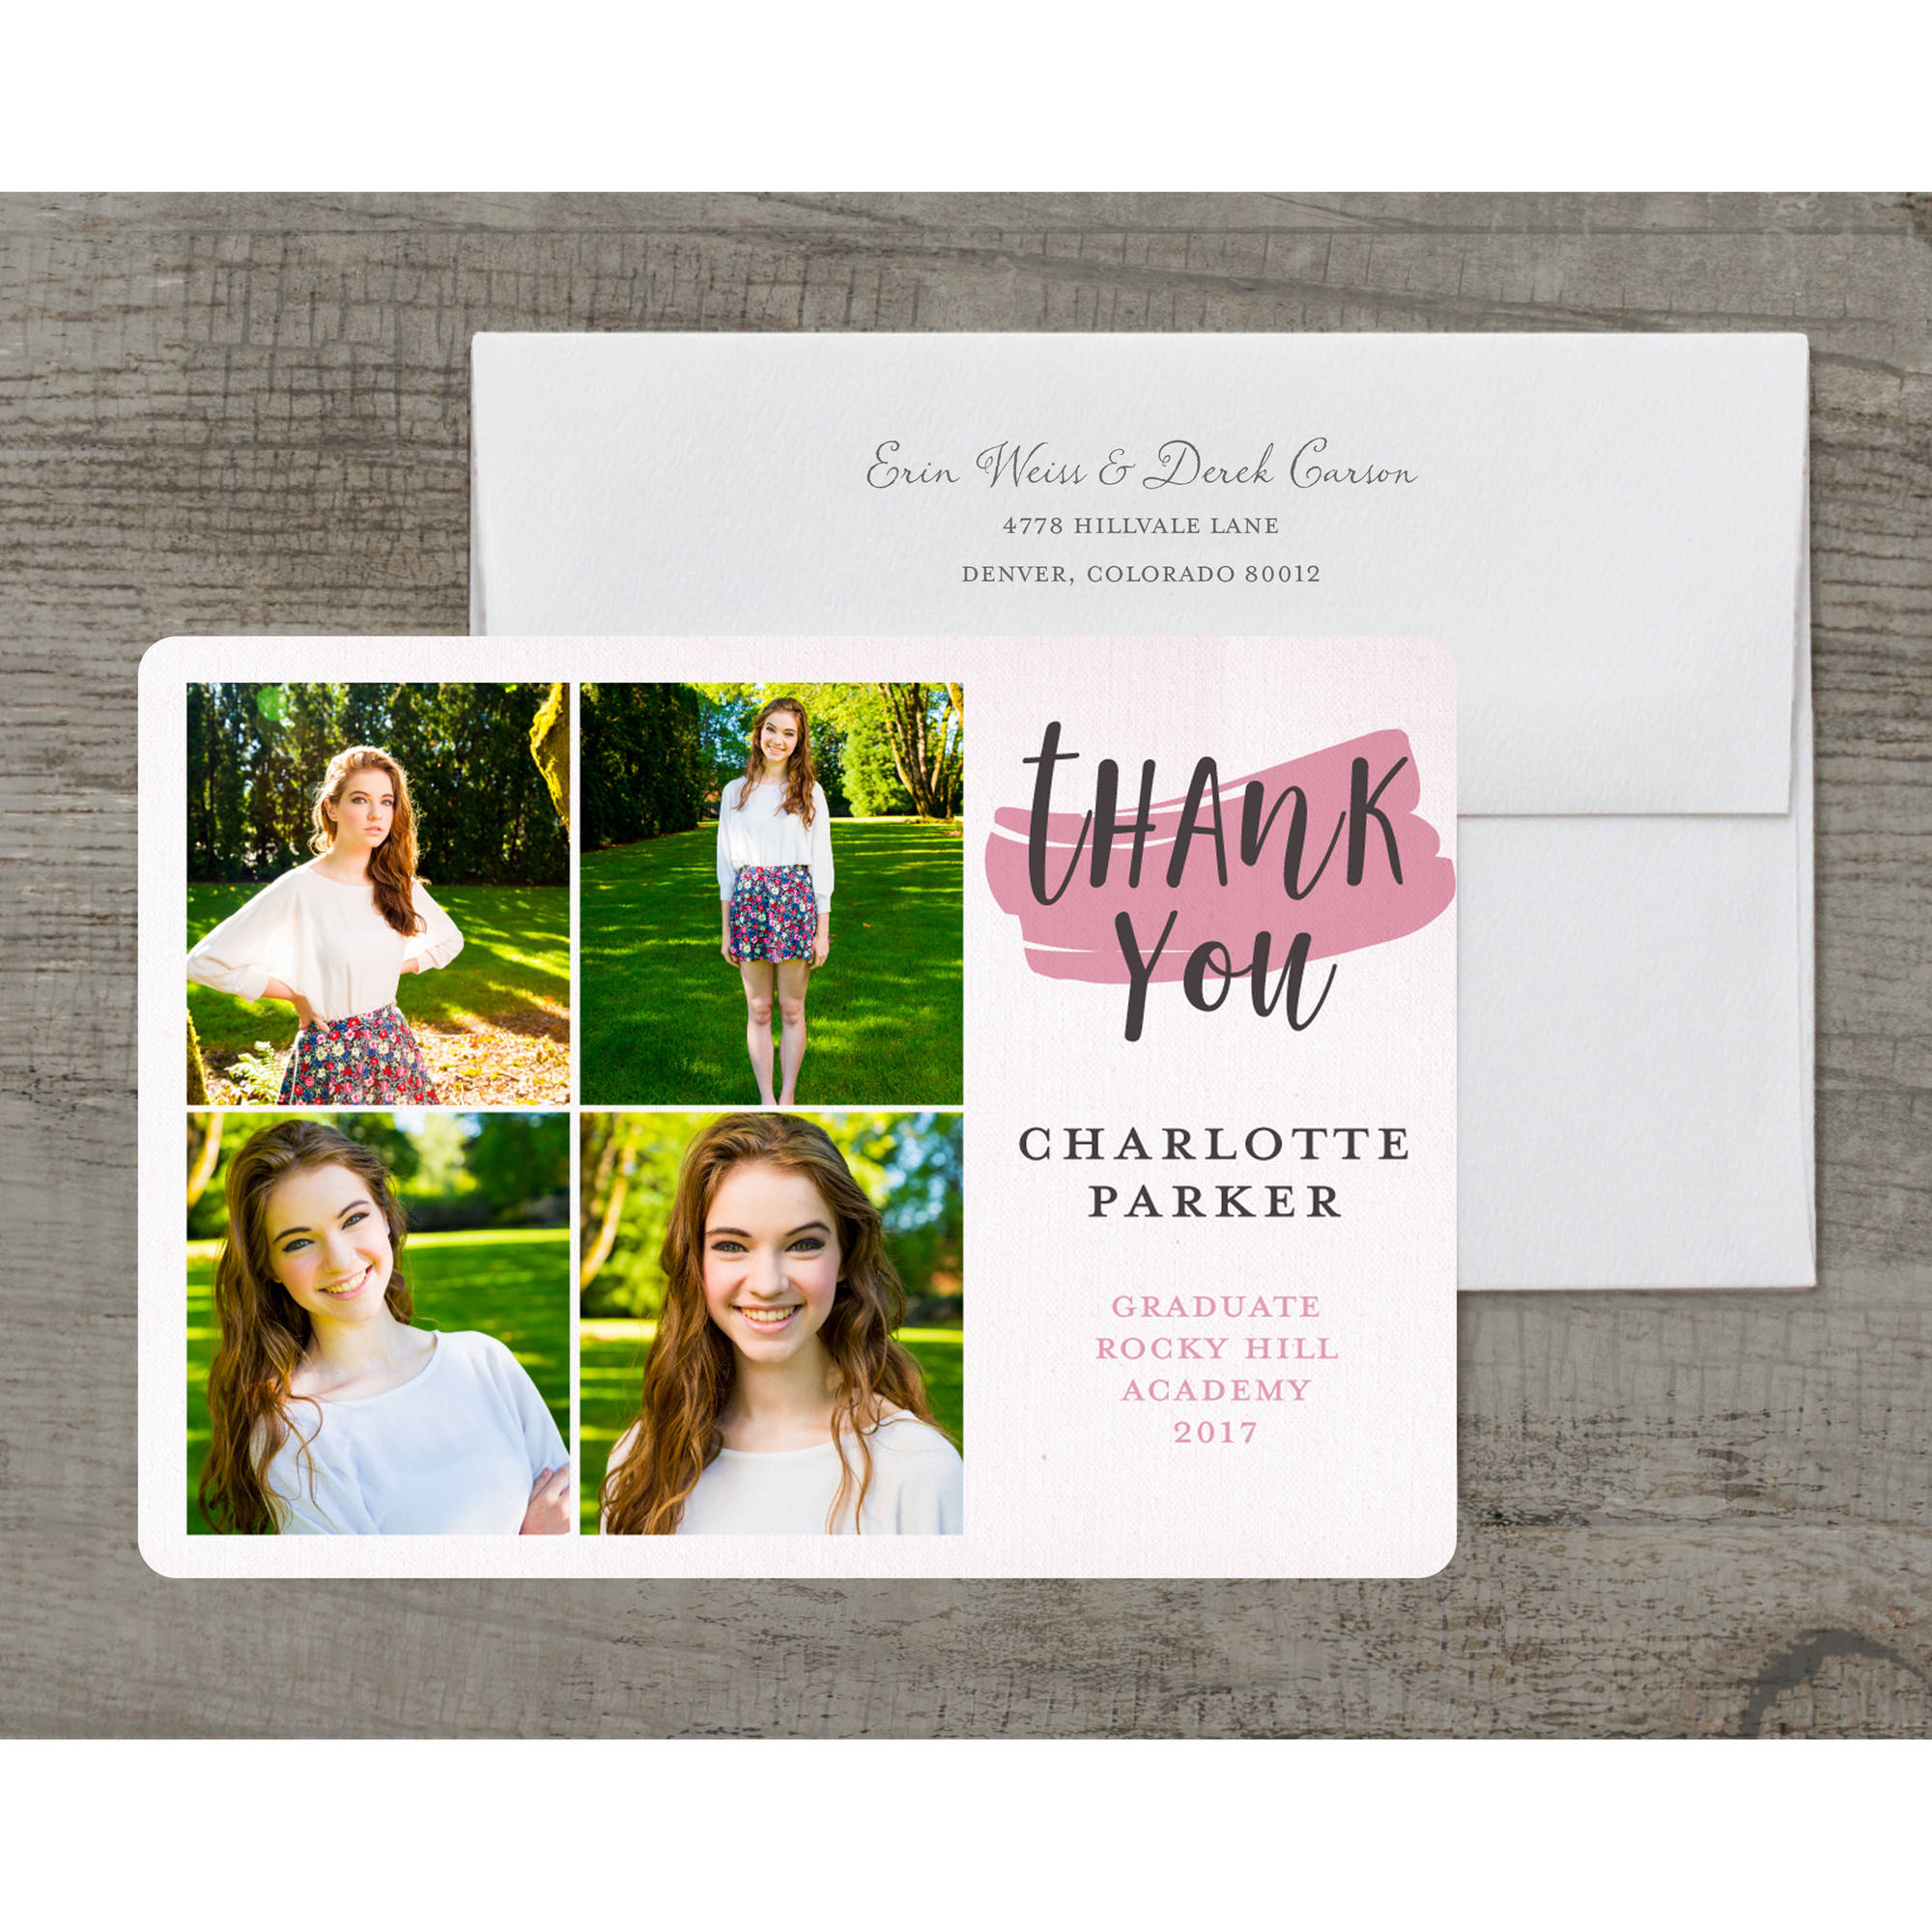 Going Places Deluxe Graduation Thank You Card